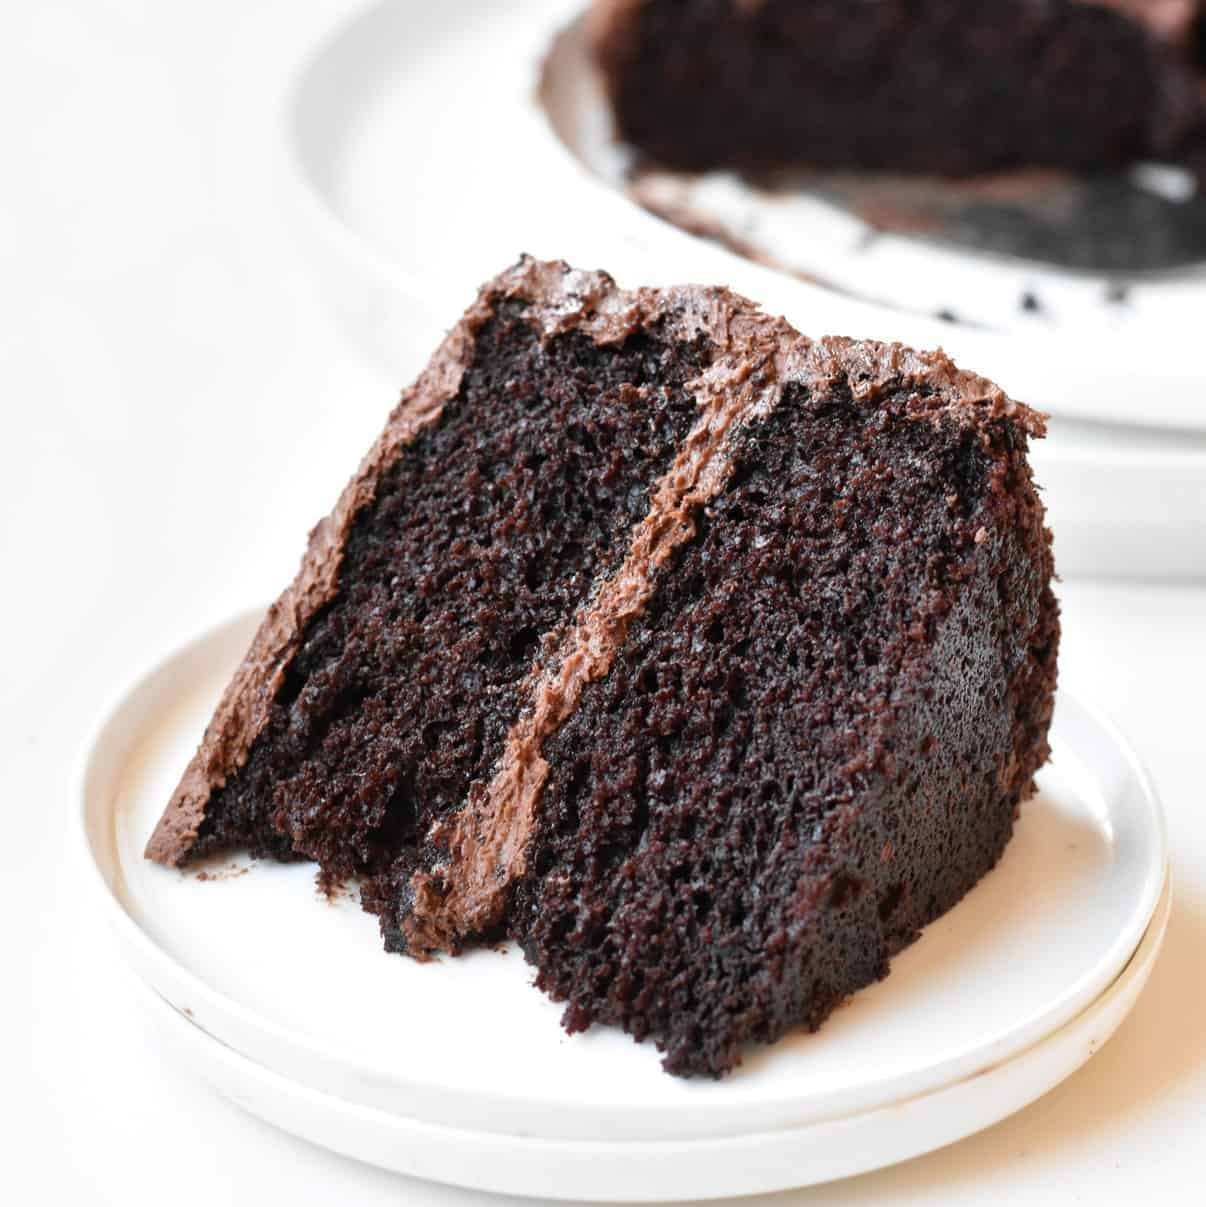 Slice of Devil's Food Cake on a plate.